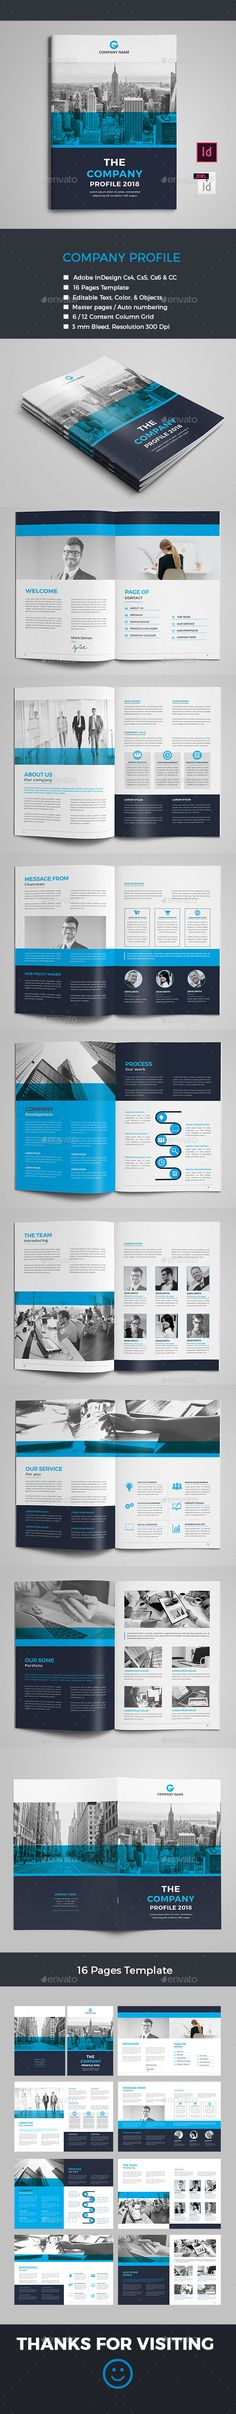 195 Best Company Profile Brochure Templates images   Company